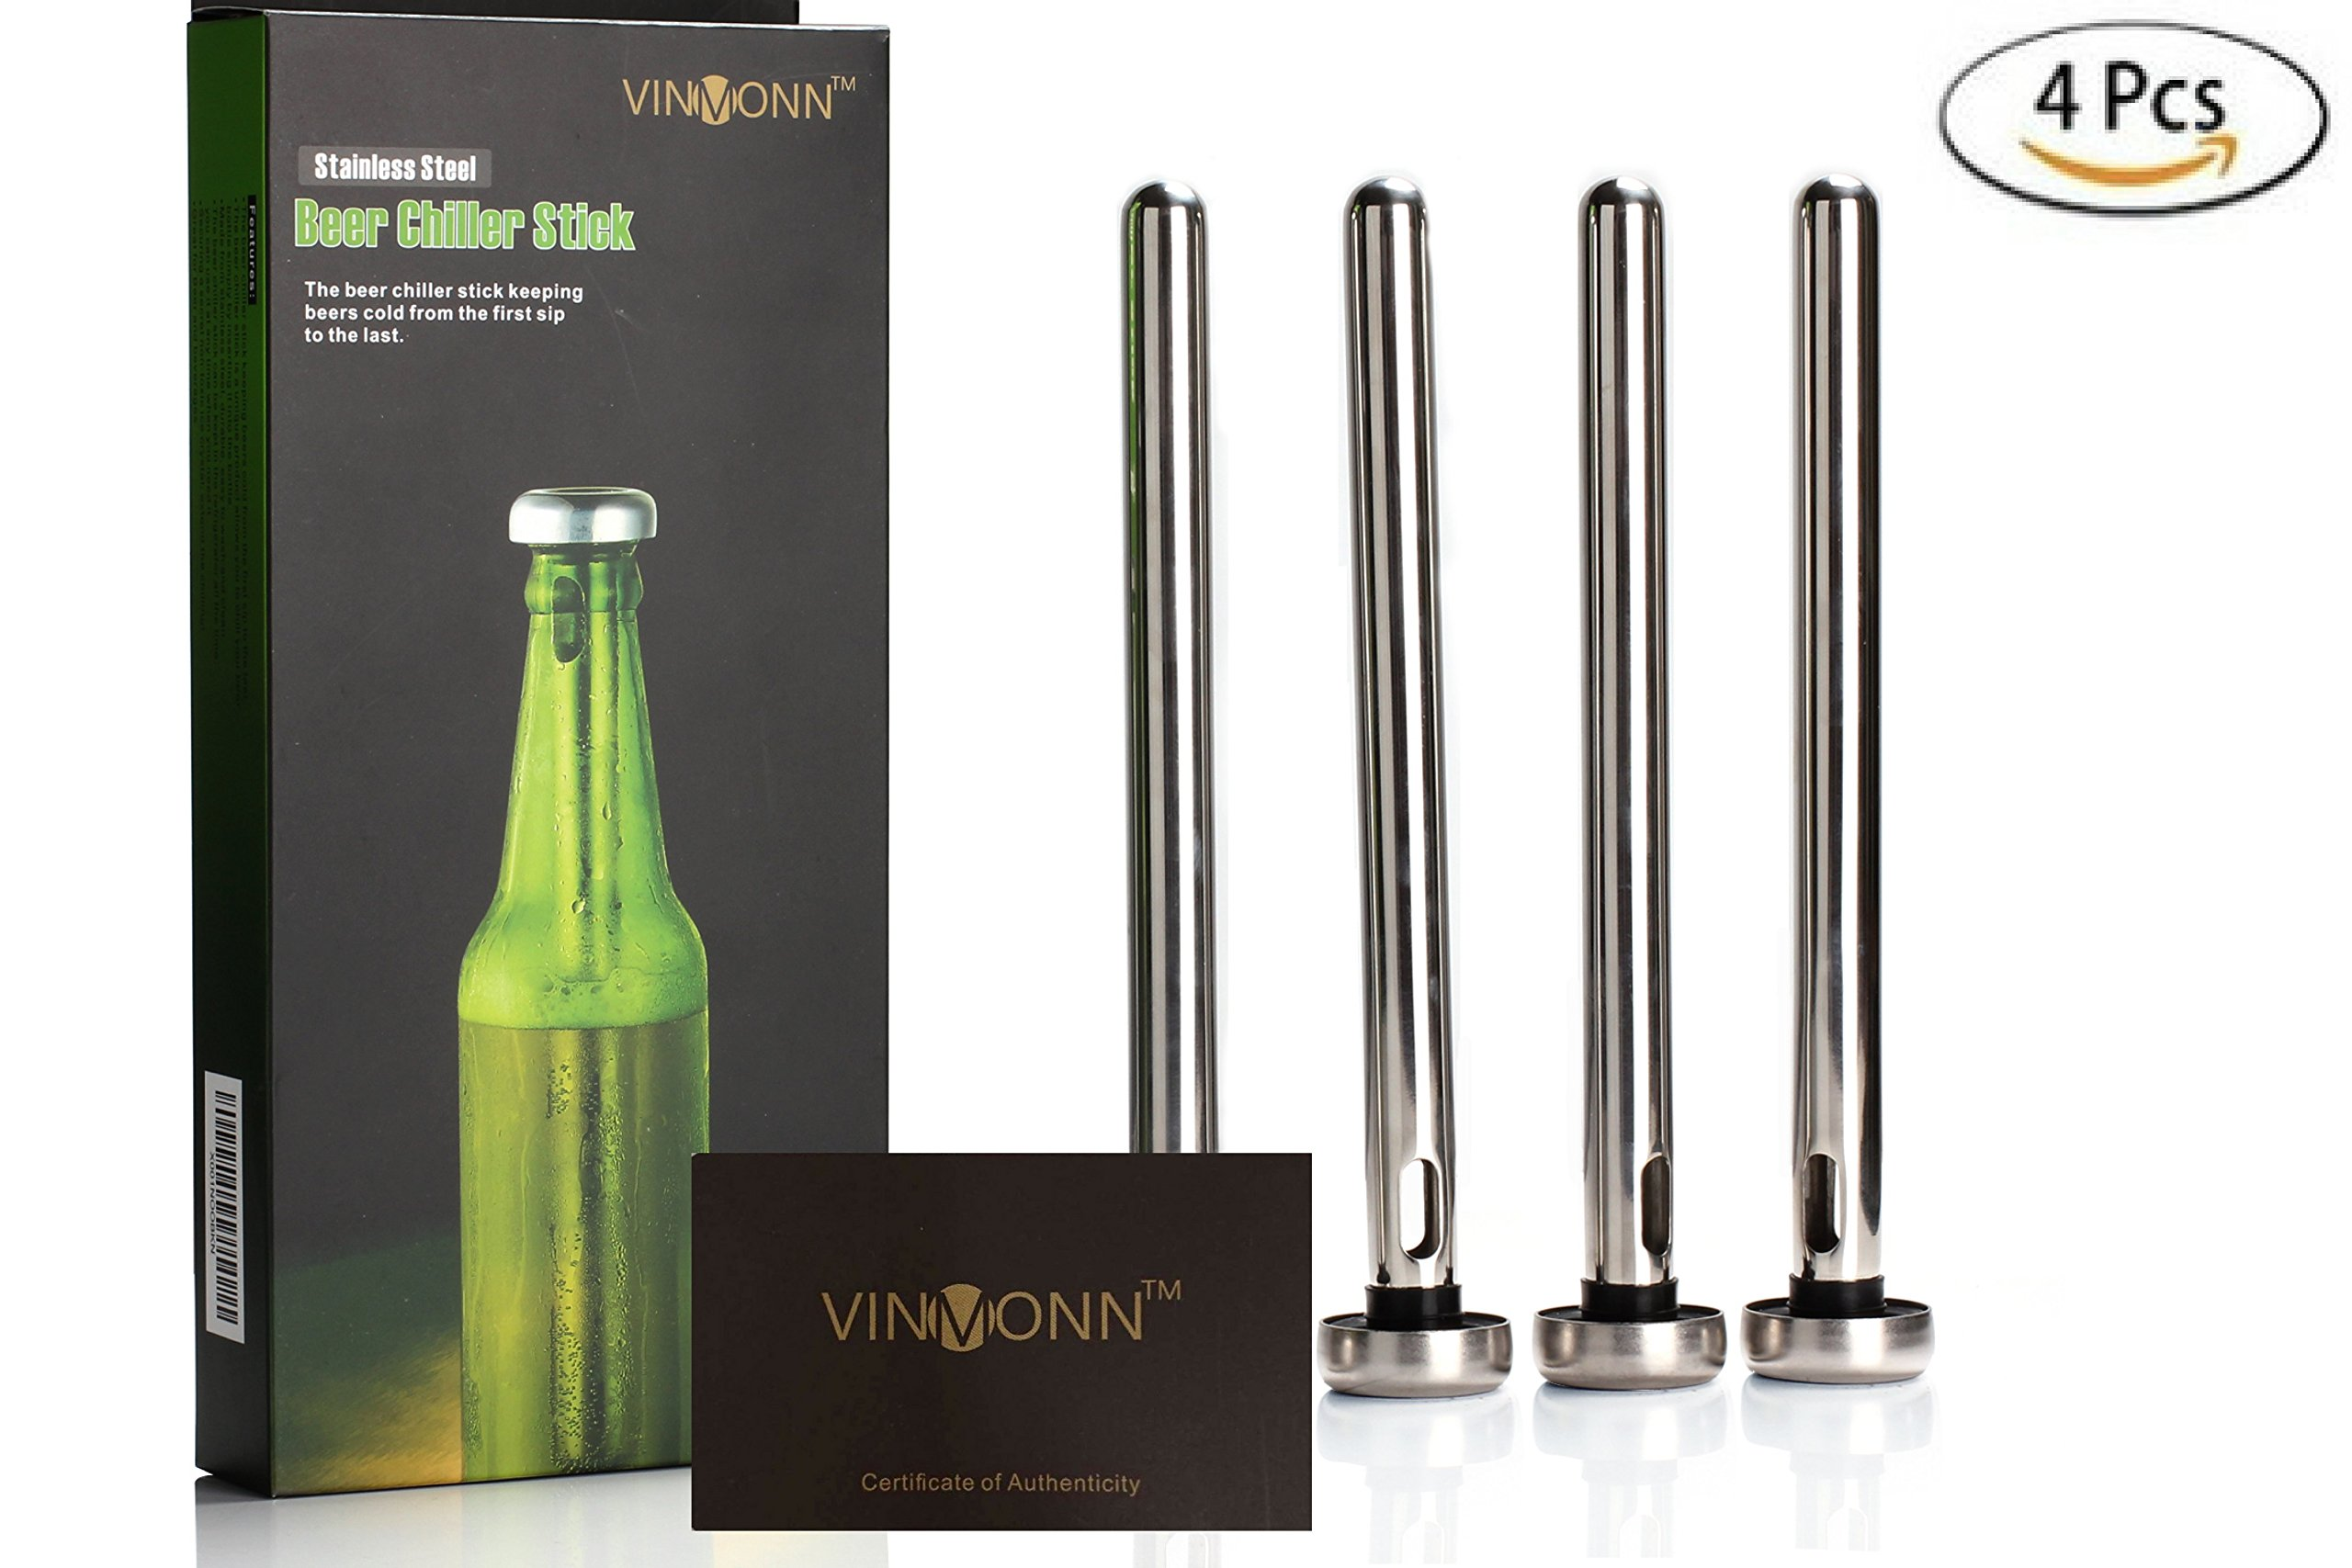 VINMONN Beer Chiller Sticks Beer Chillers for Bottles  Beer Chilling Sticks 4 Pieces Set Craft Beer Gifts :: Perfect Beer Accessories and Gifts